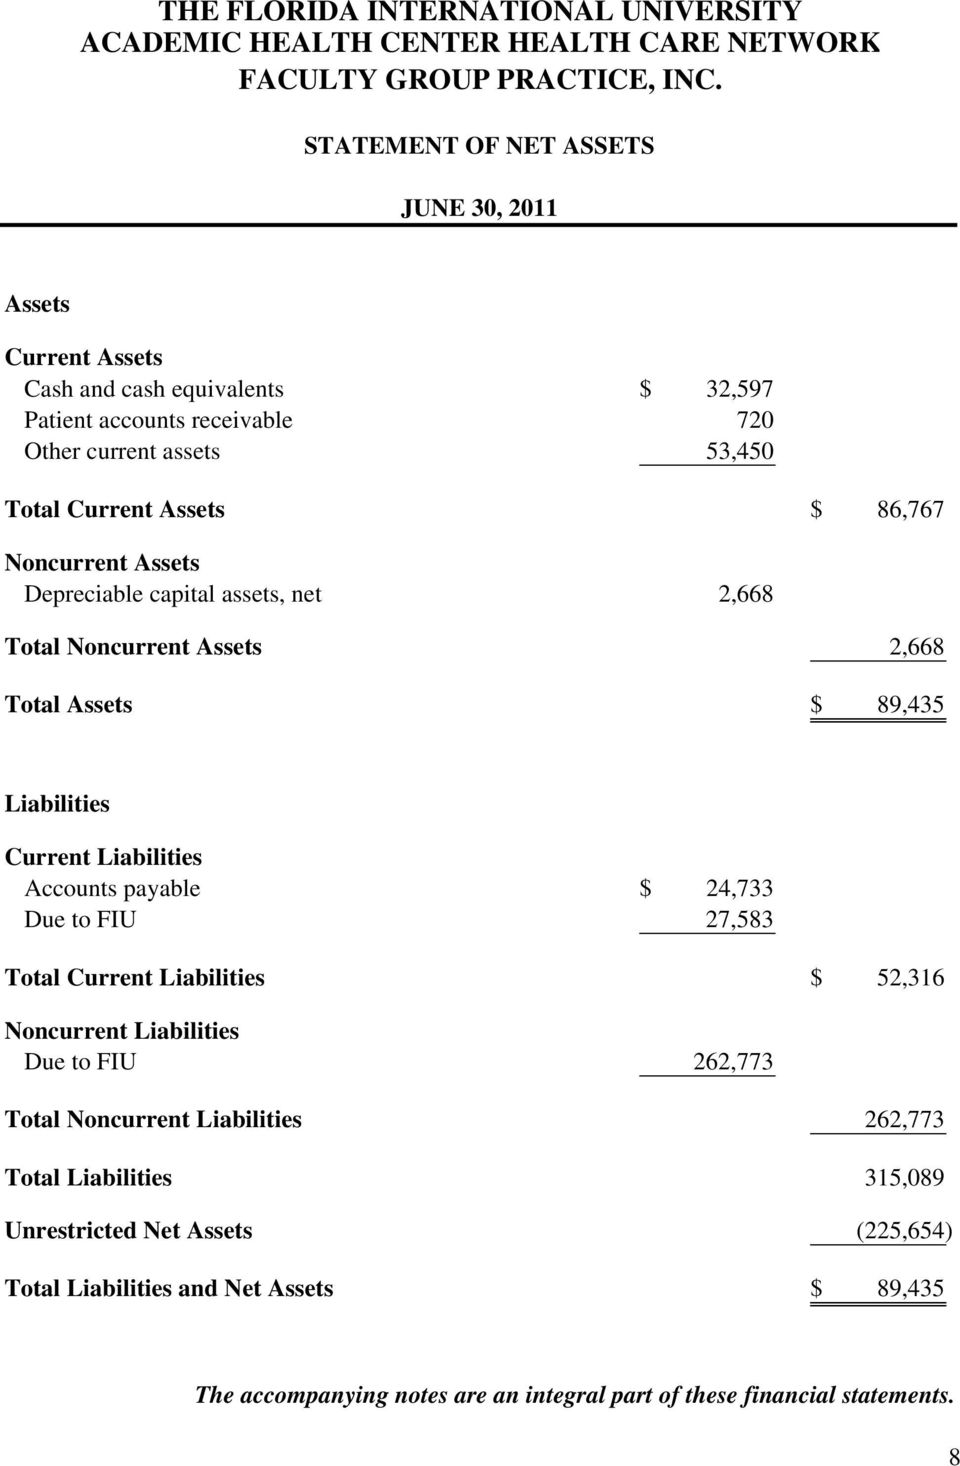 Accounts payable $ 24,733 Due to FIU 27,583 Total Current Liabilities $ 52,316 Noncurrent Liabilities Due to FIU 262,773 Total Noncurrent Liabilities 262,773 Total